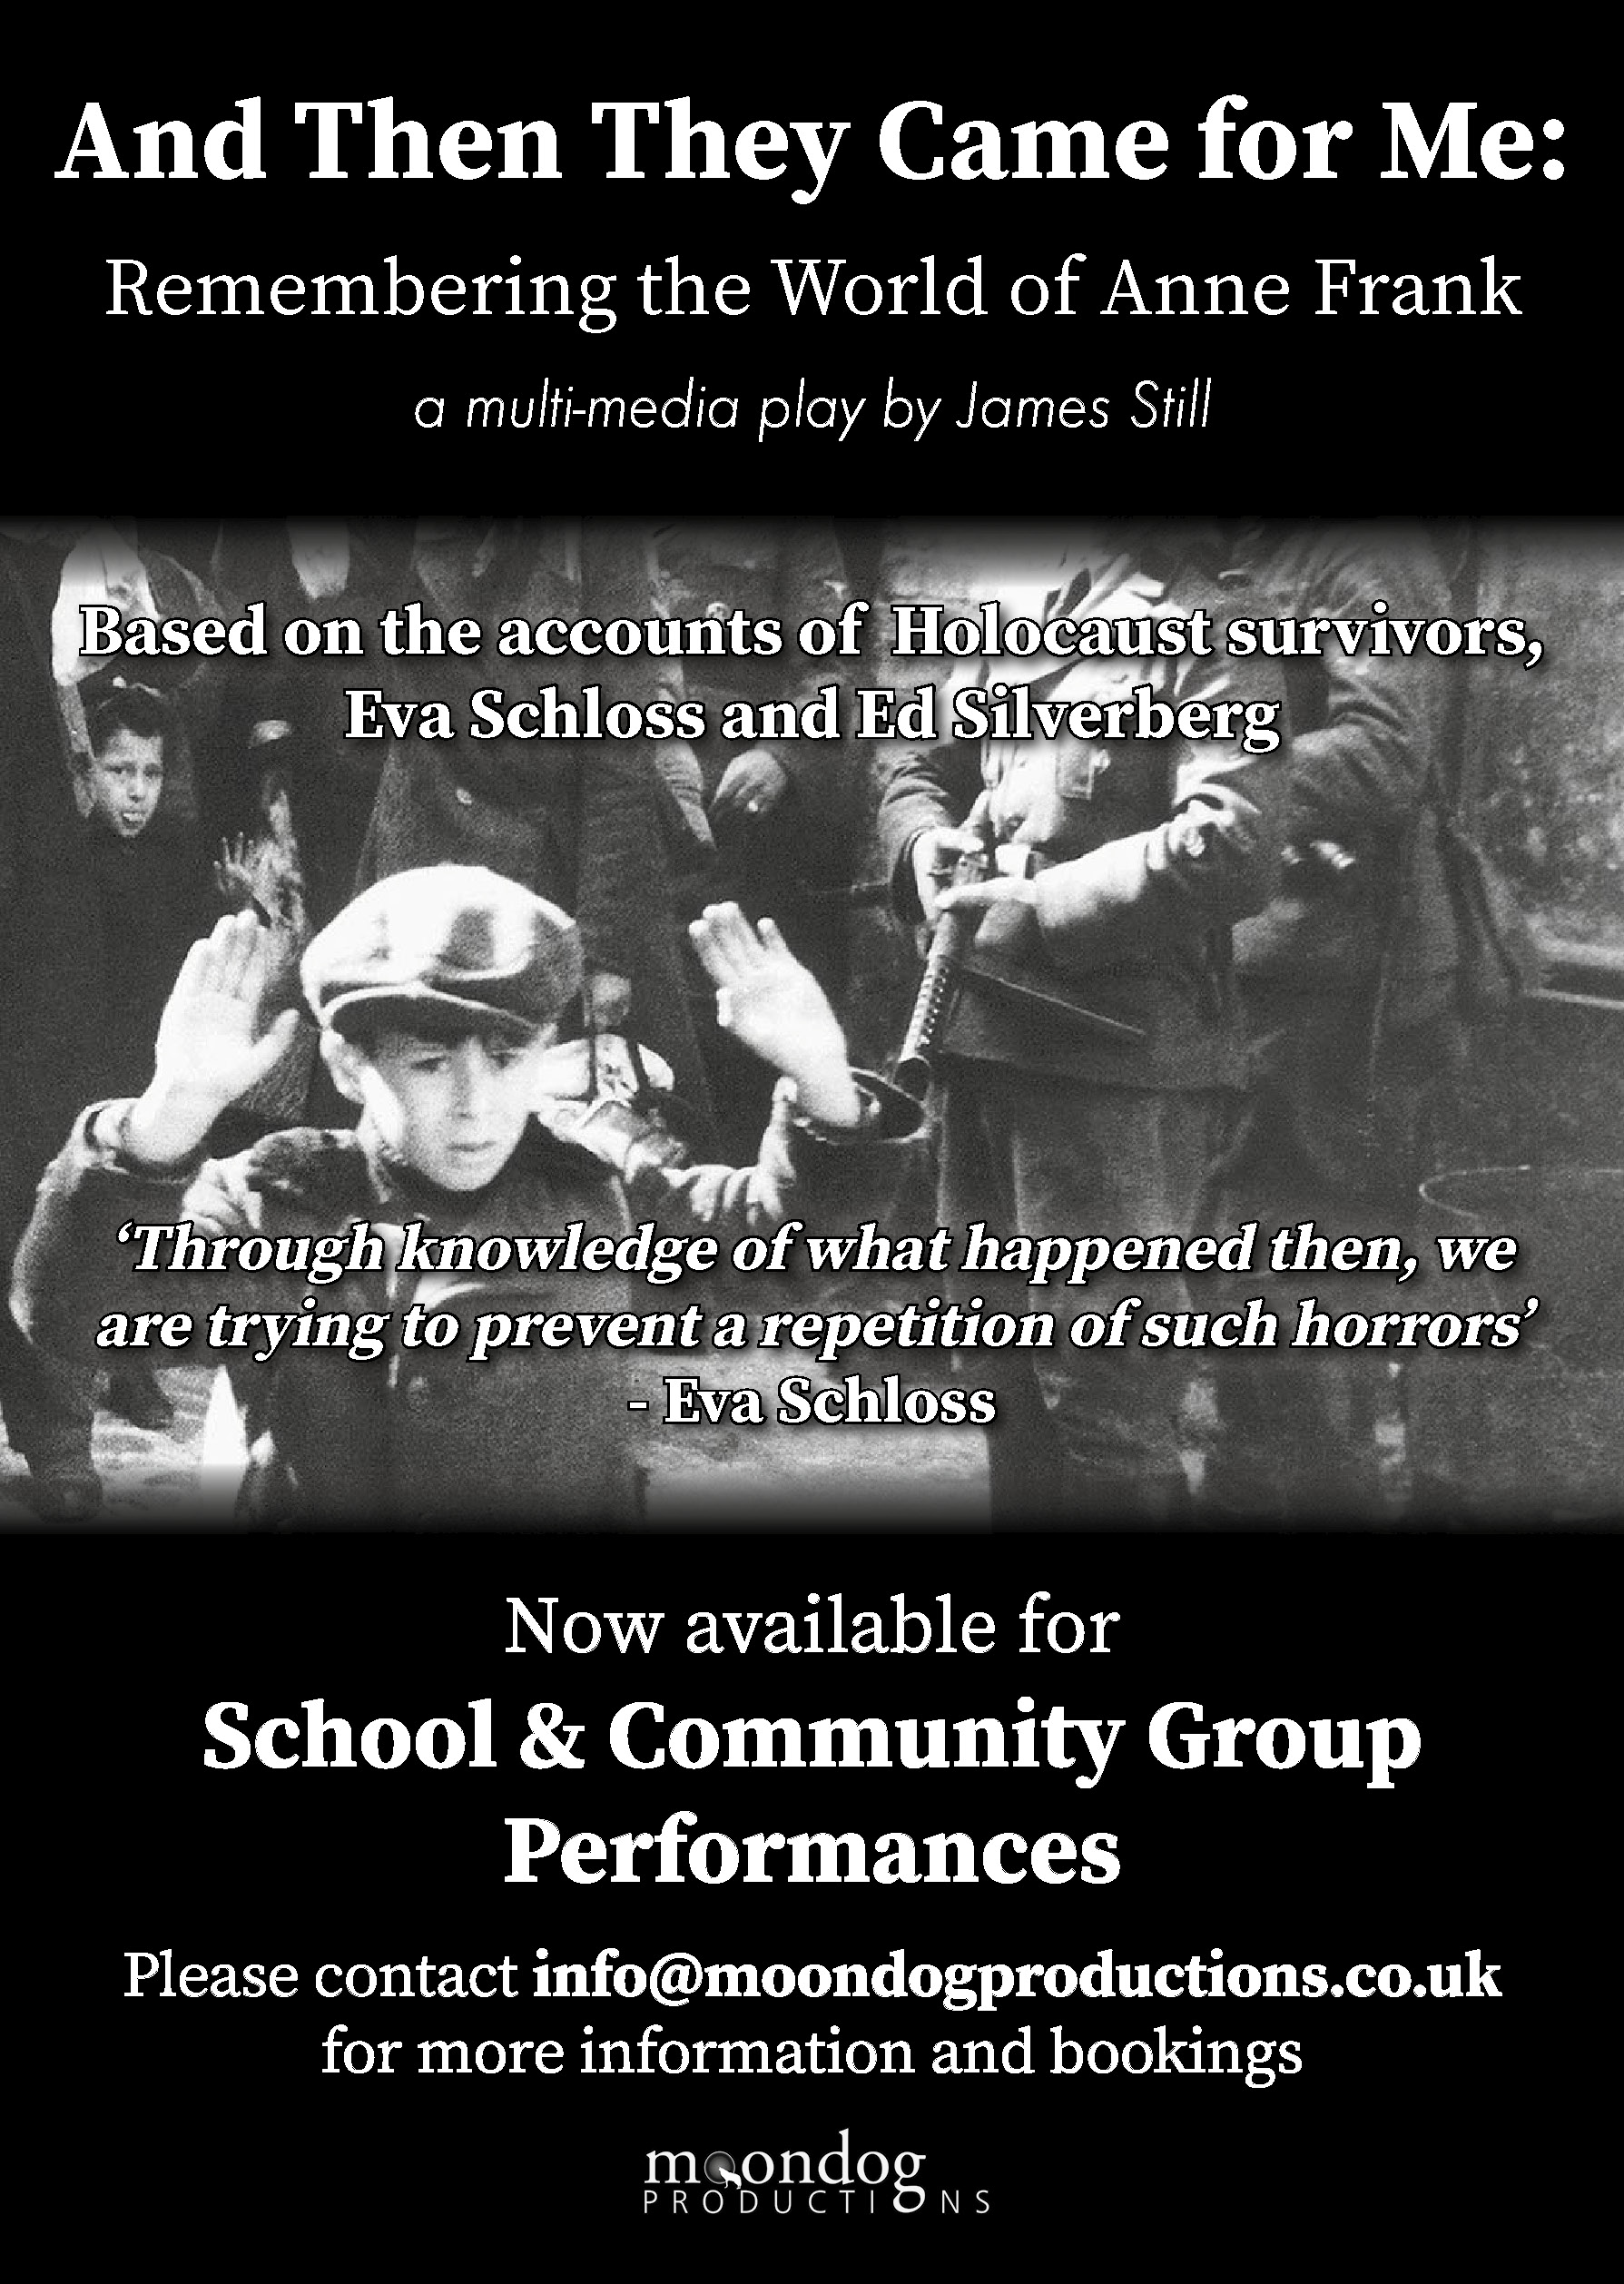 And then they came for me Poster FOR SCHOOLS (NEW JULY 2018).jpg